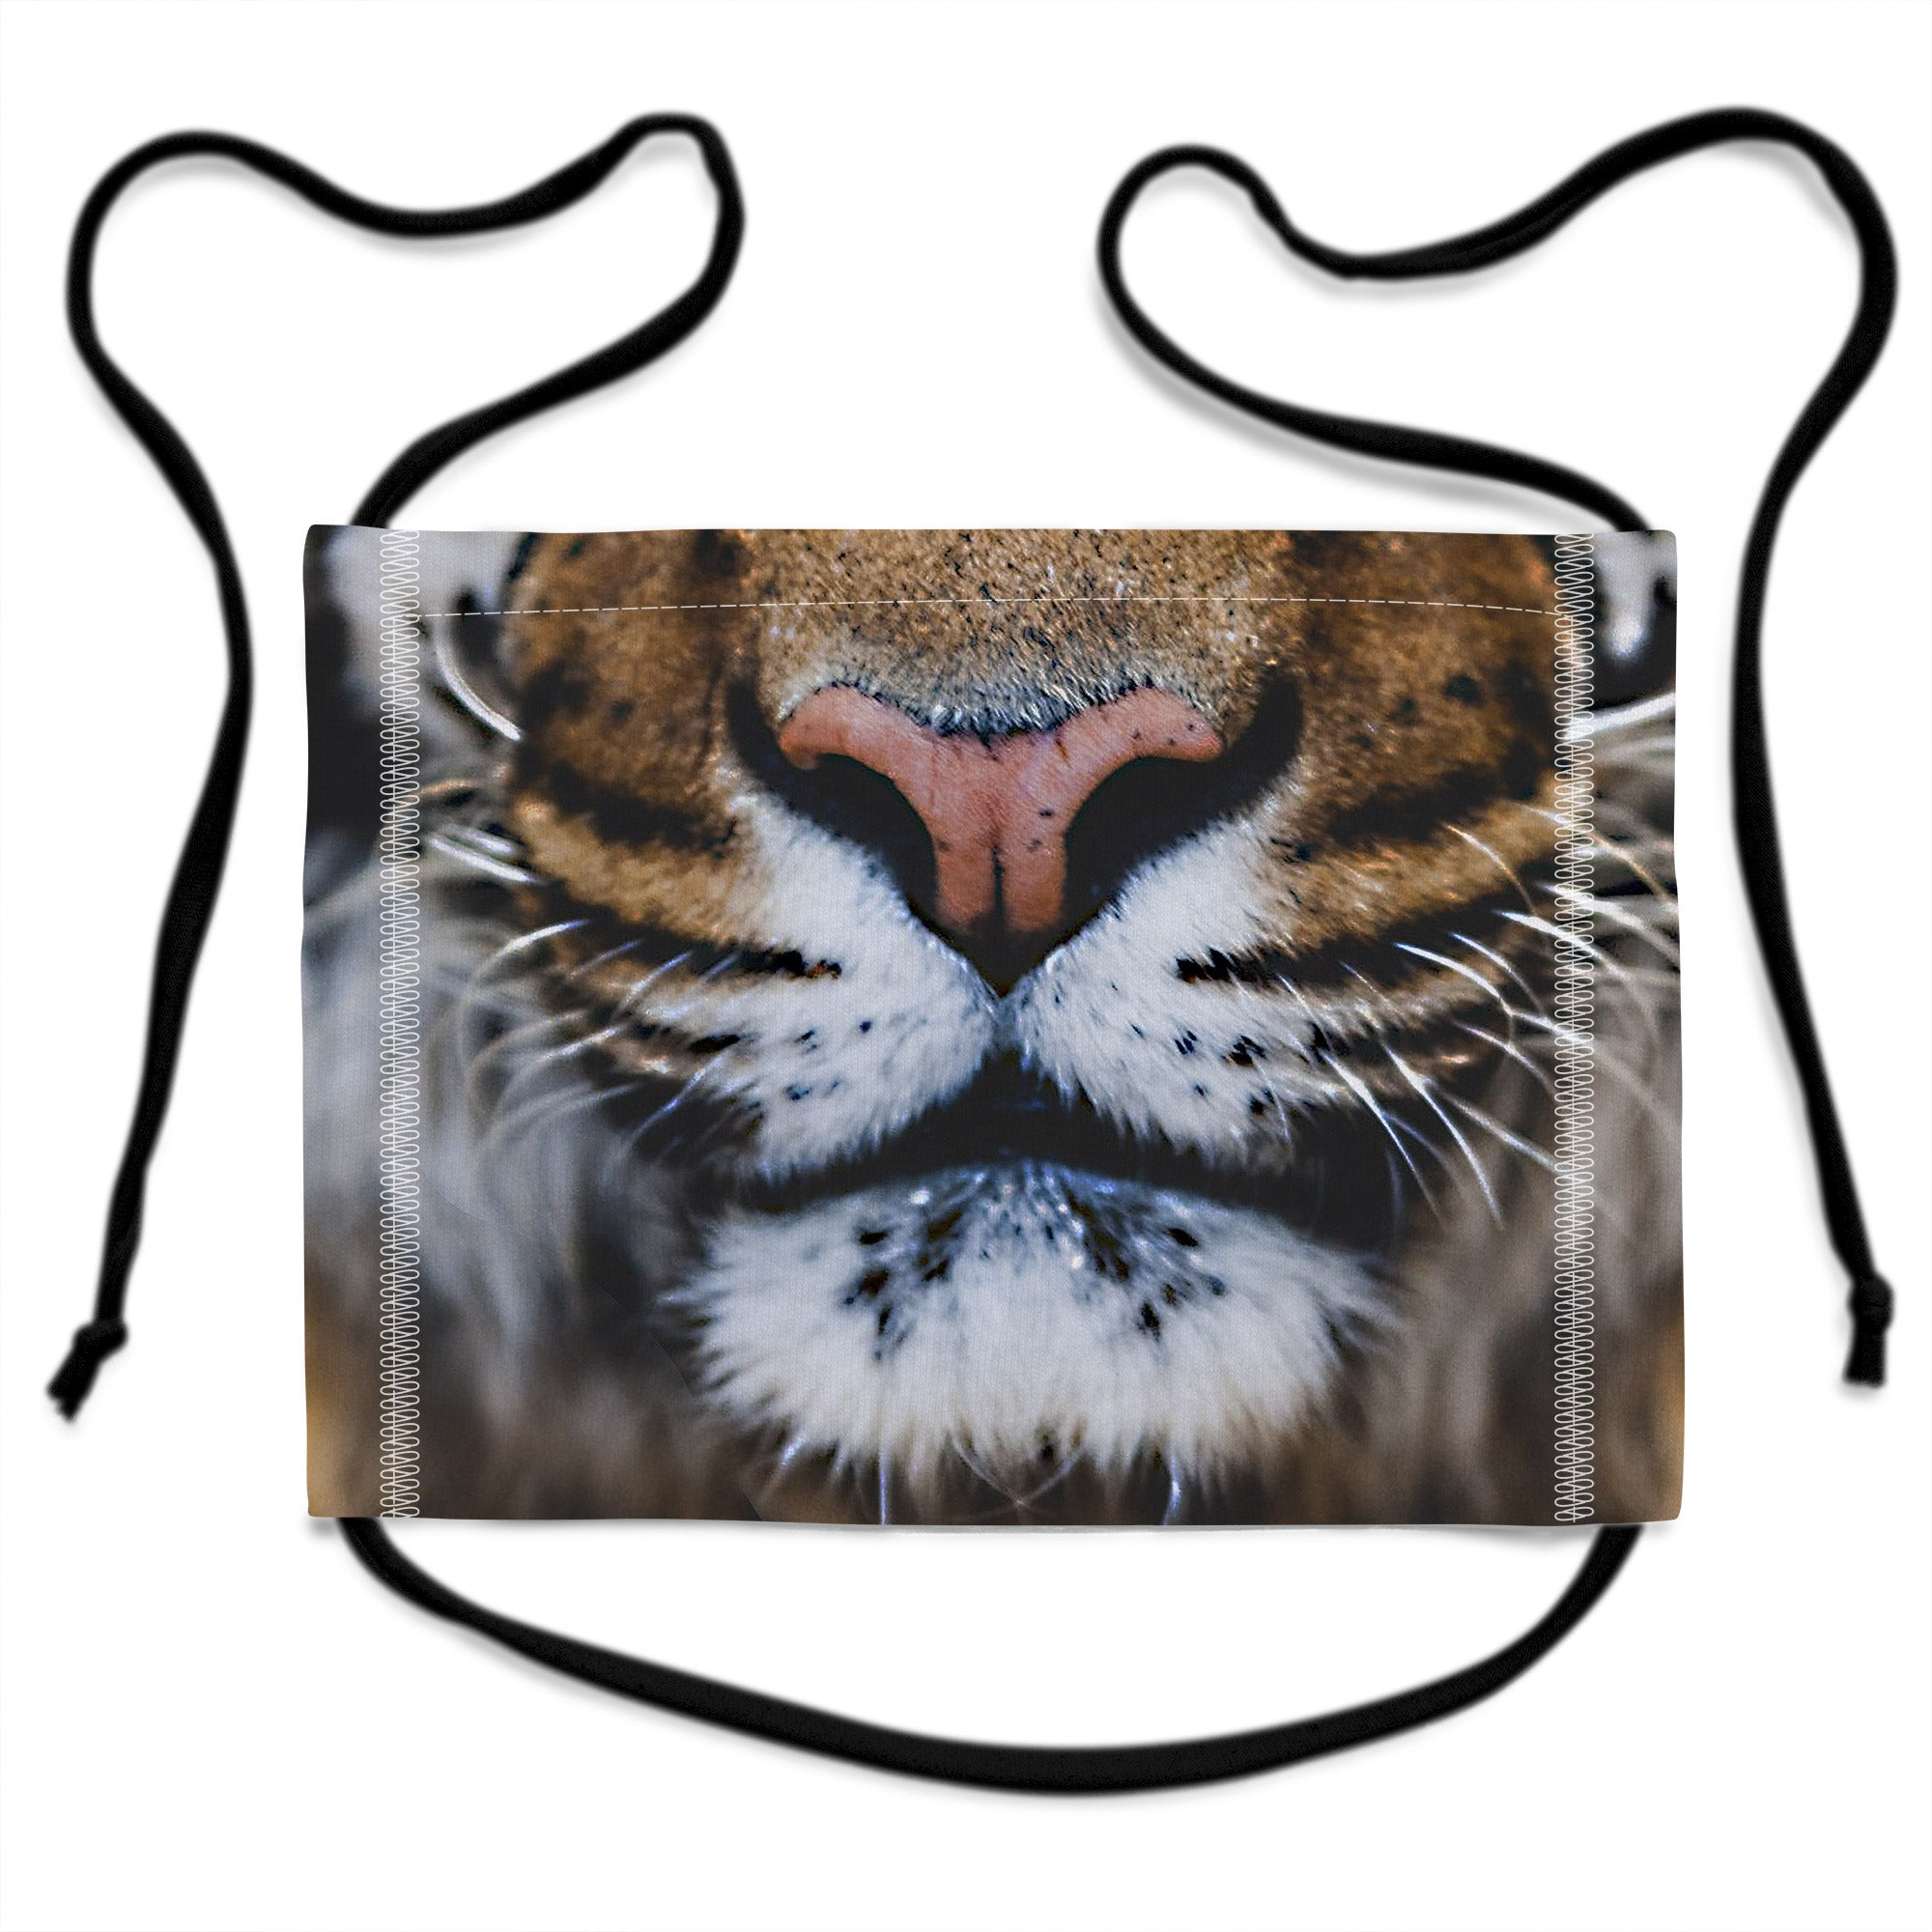 CHEAP Tiger Face Mask 26654251997 – Clothing Accessories